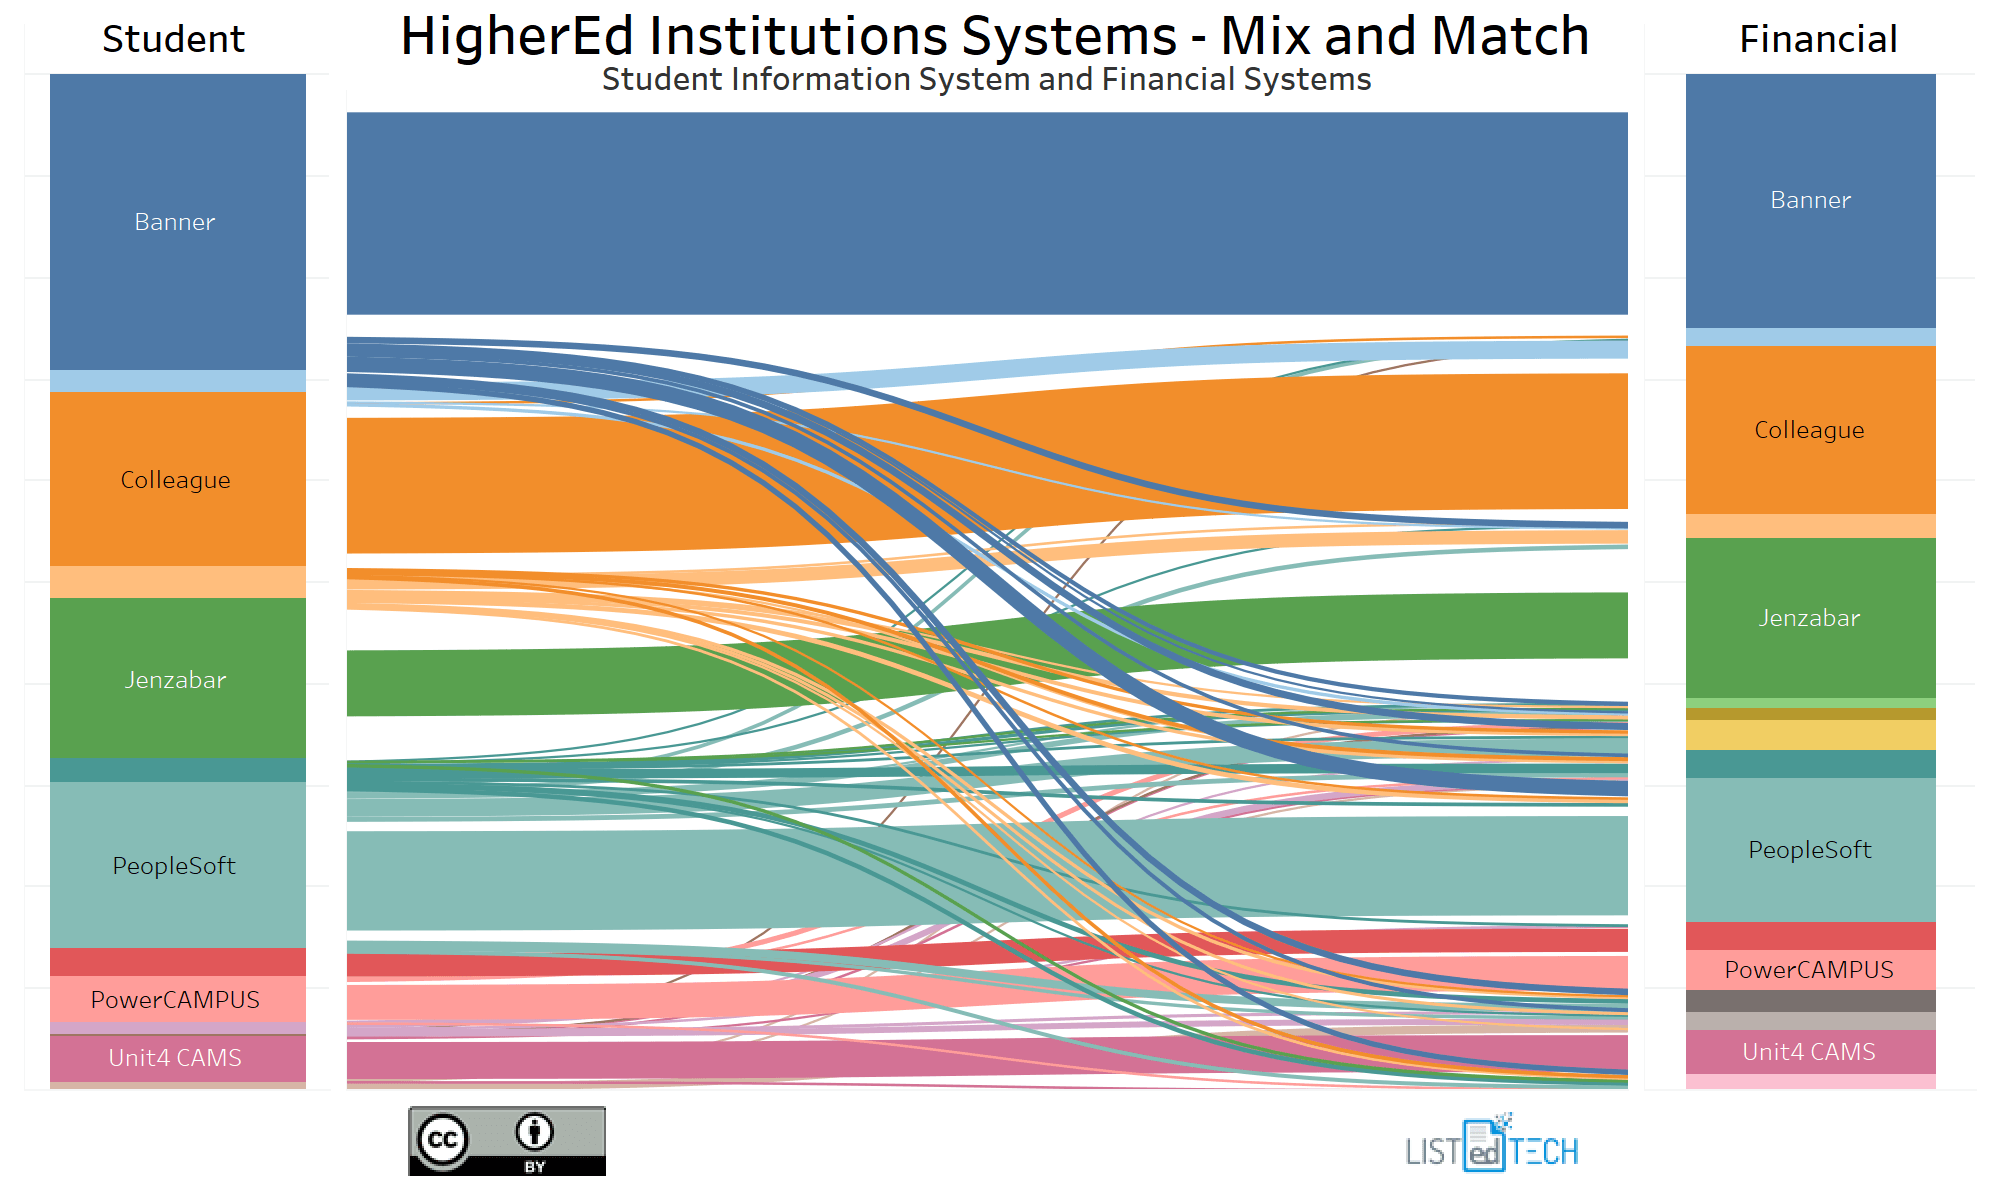 HigherEd Institution Systems - LisTedTECH